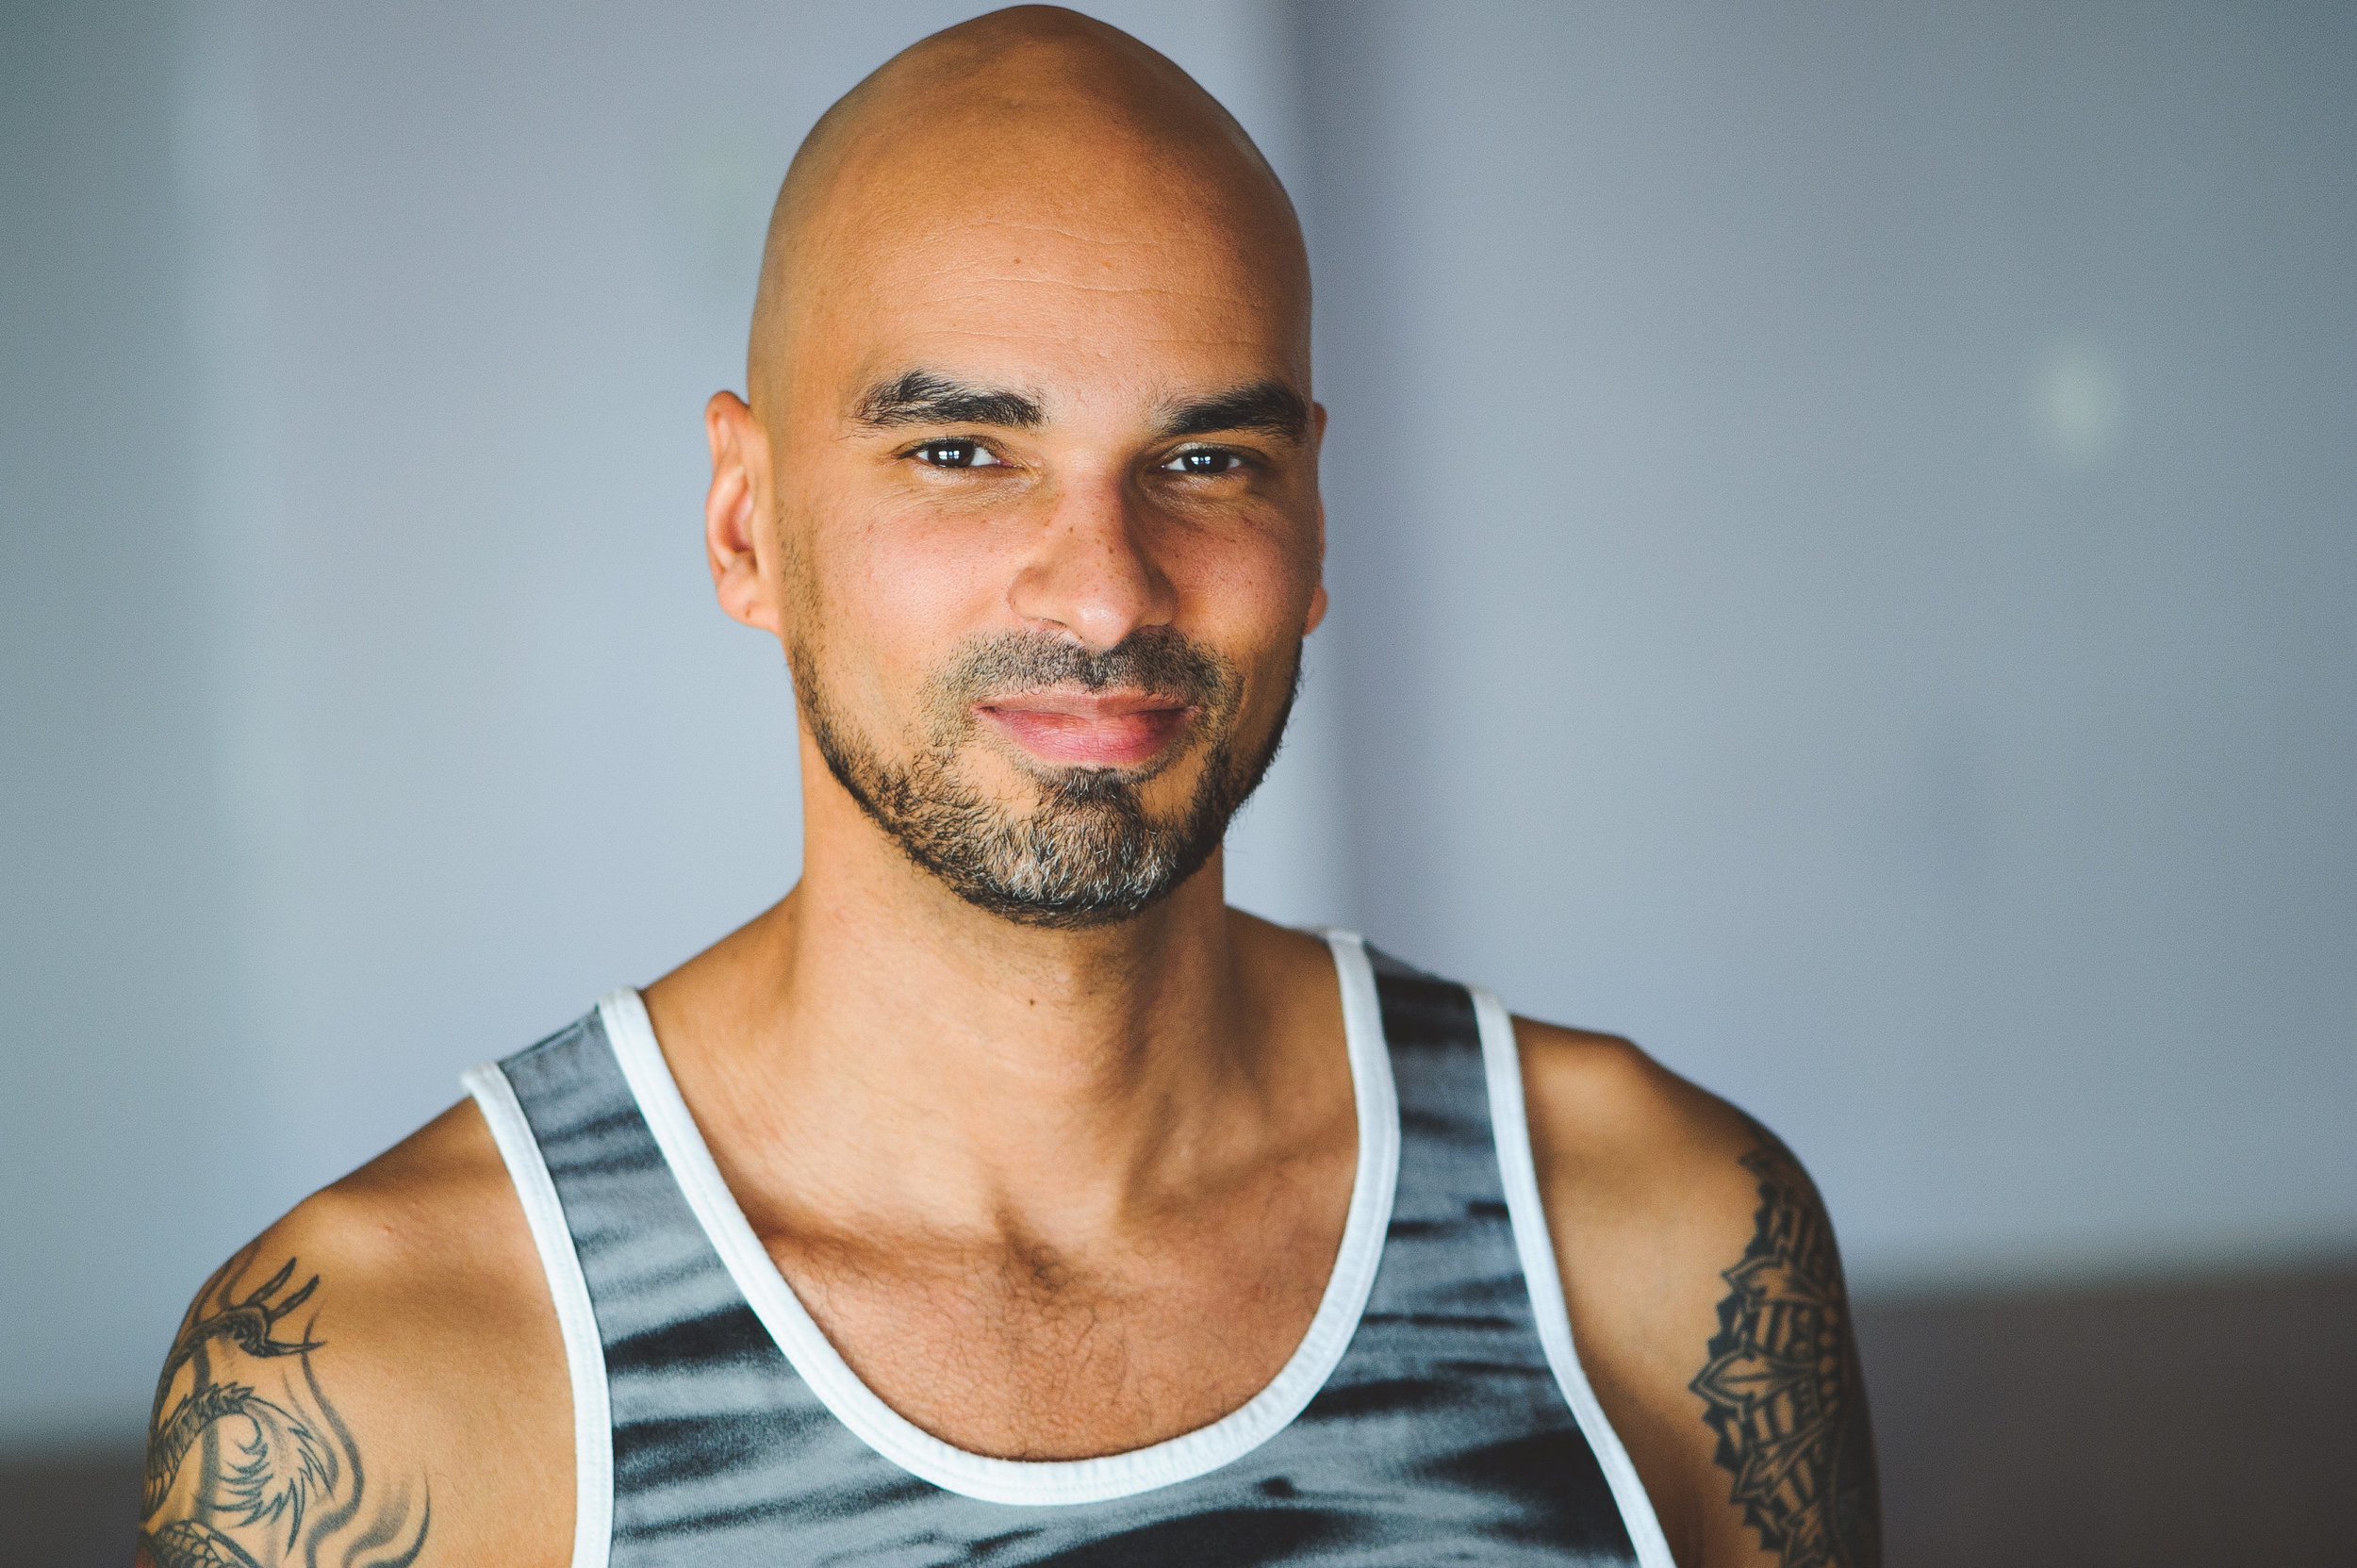 Joshua Webster - Joshua Webster is an acupuncturist, a long time yoga and meditation teacher and former junior Buddhist monk. He loves books and movies and has a passion for helping people improve their health and wellness.